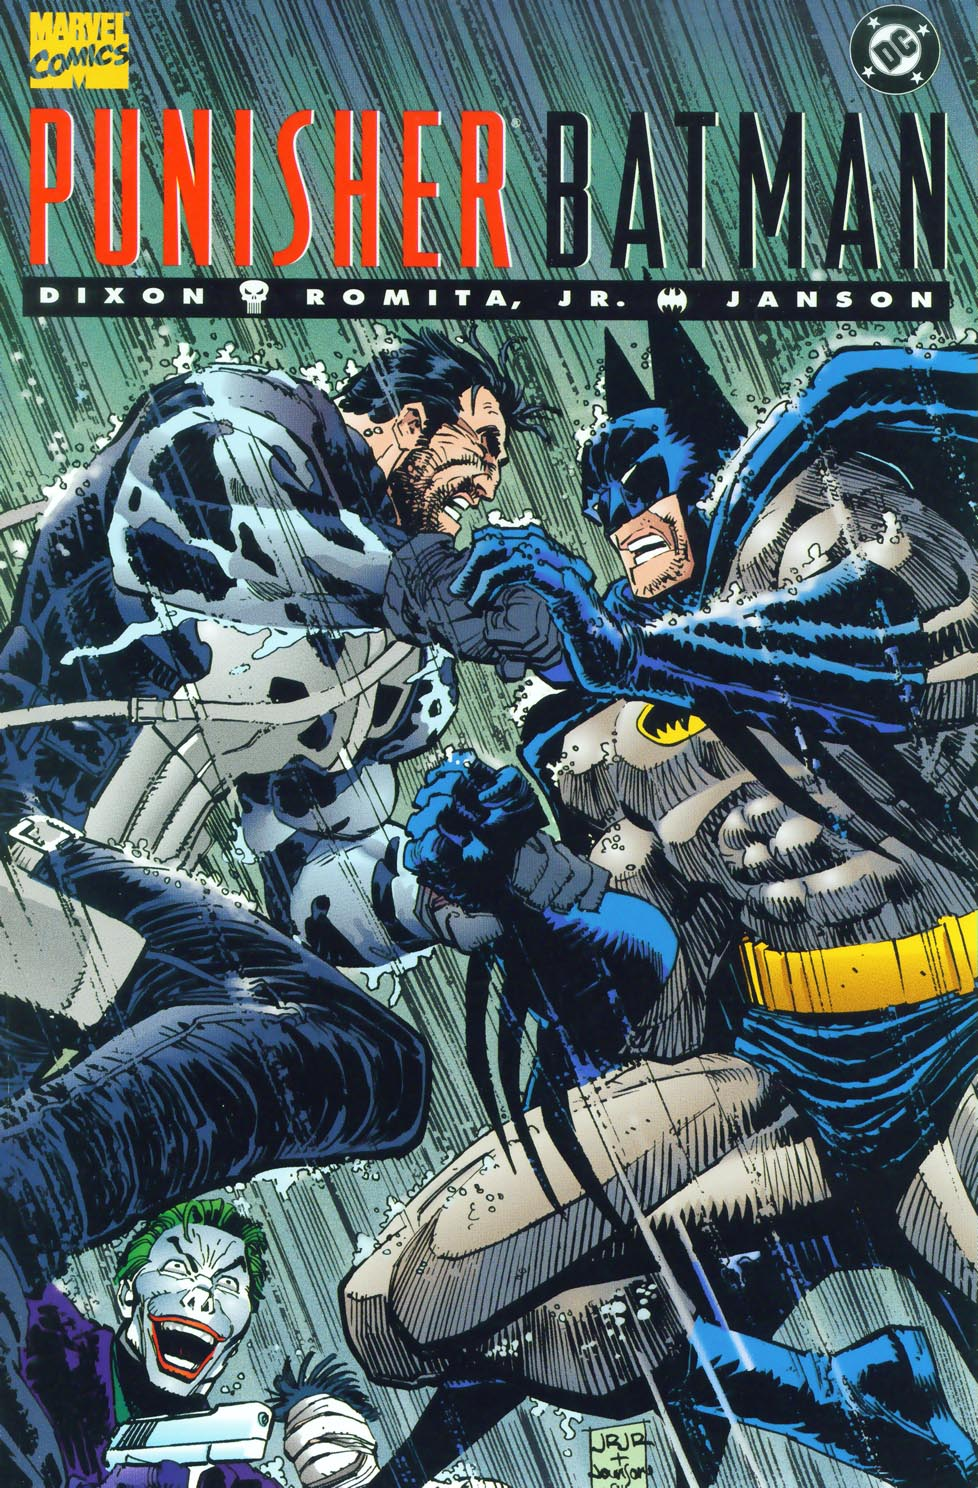 Read online Punisher/Batman: Deadly Knights comic -  Issue # Full - 1